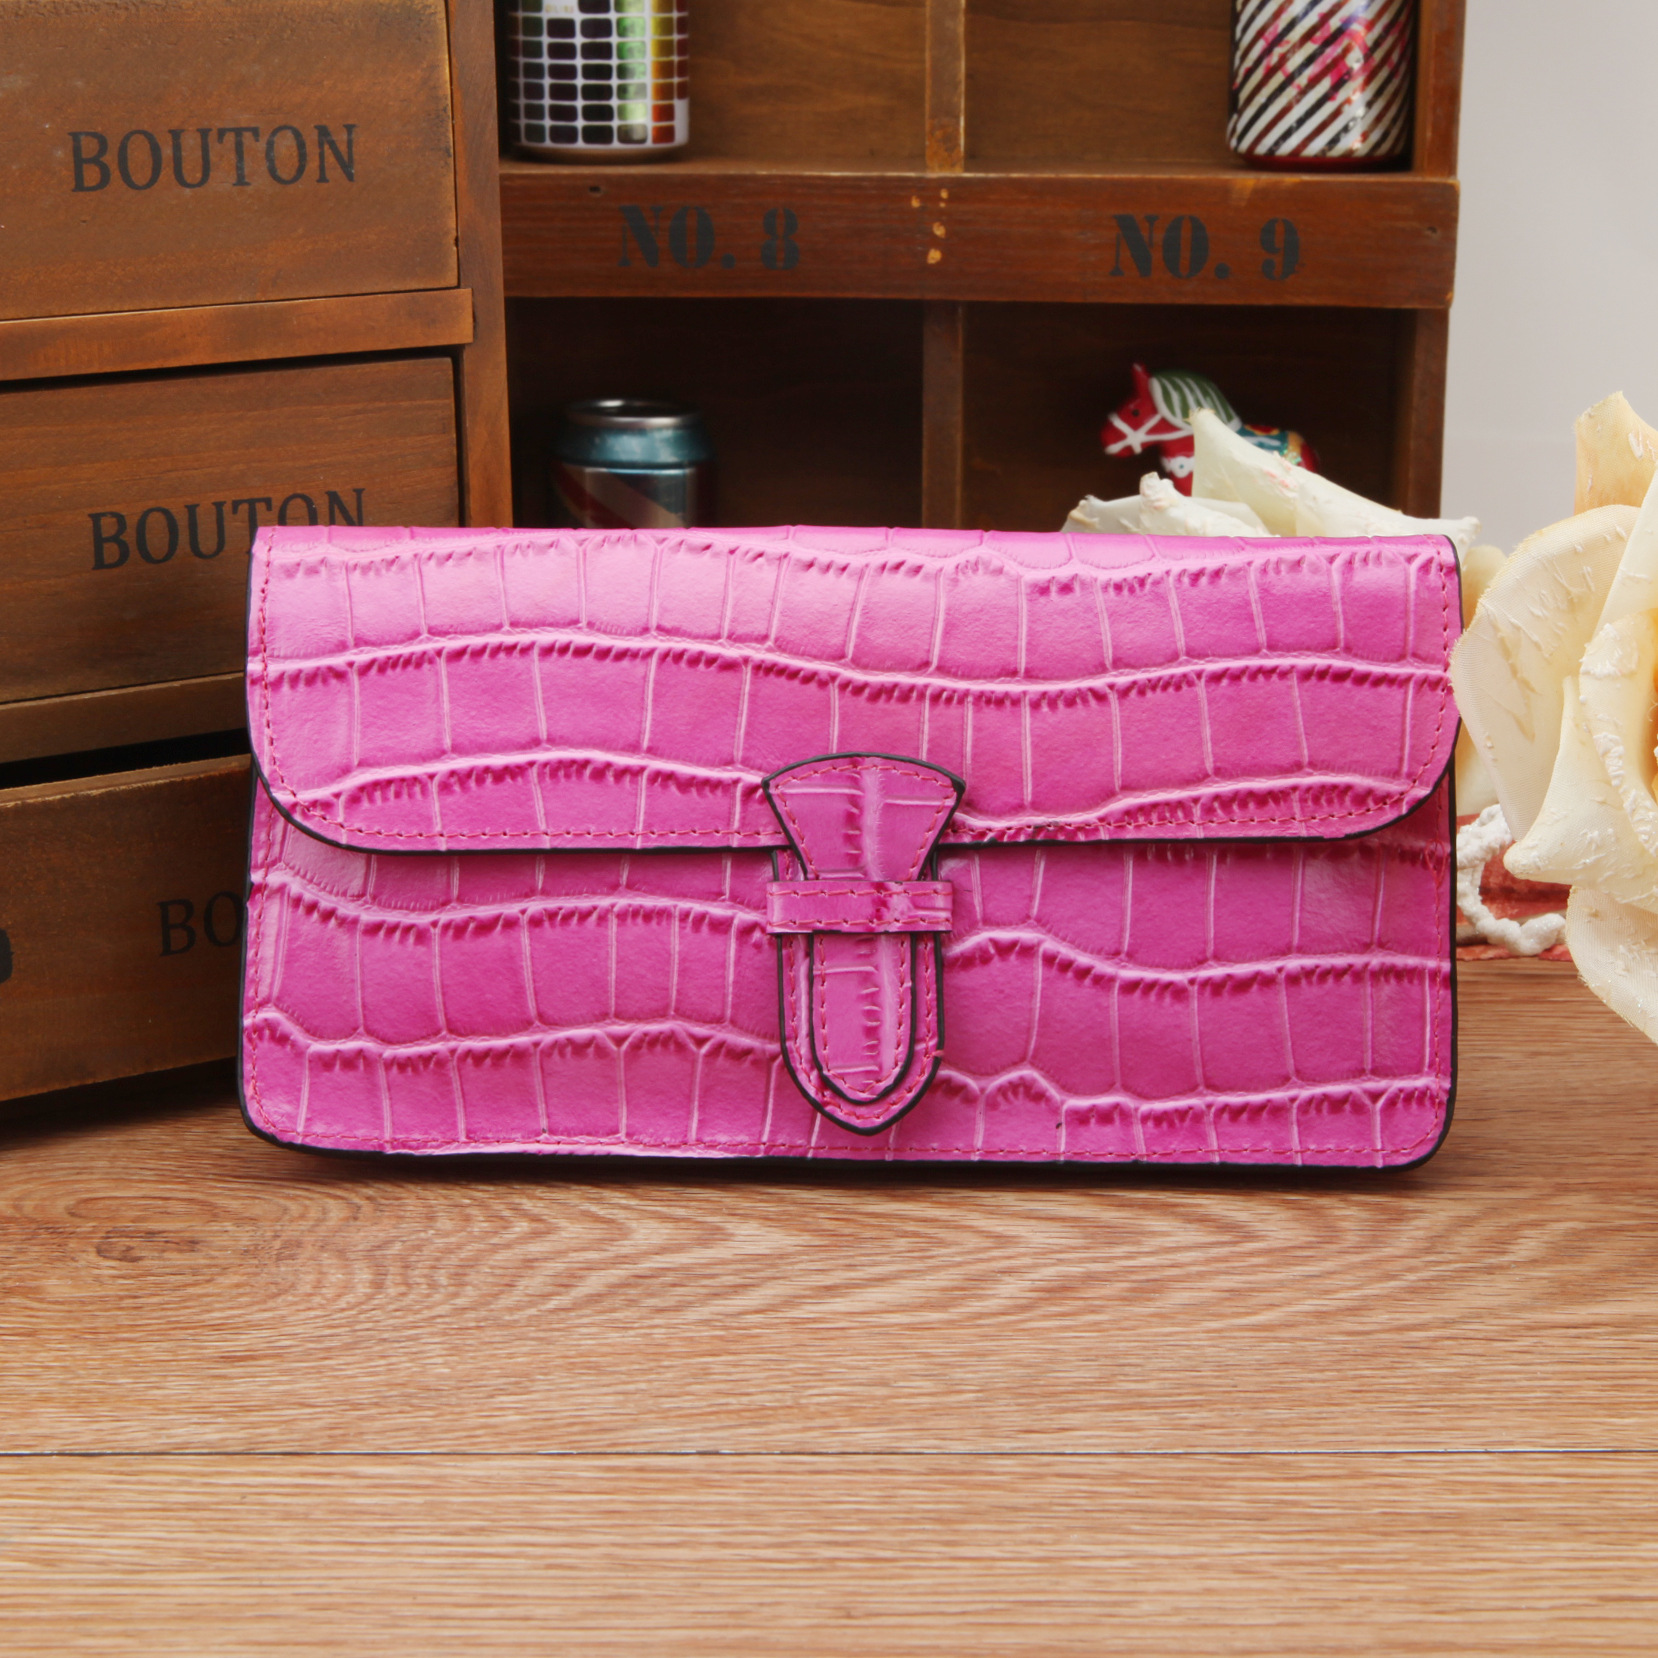 2017 NEW Long Women Wallets Genuine Leather Coin Purse Famous Brand Womens Wallets and Purses Crocodile Pattern Wallet<br><br>Aliexpress